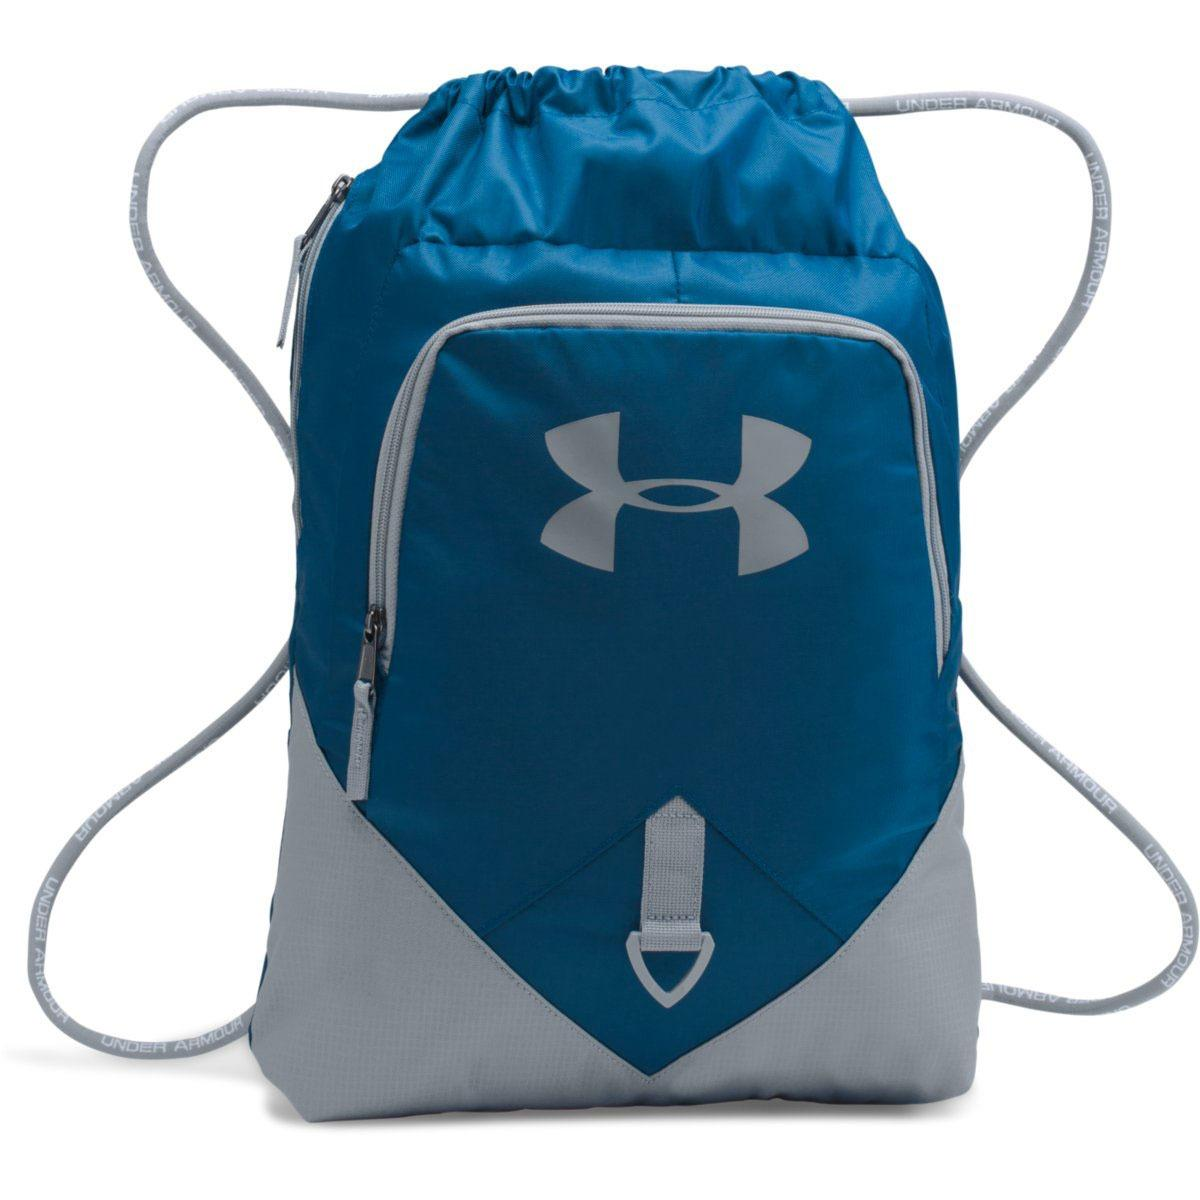 Under Armour original undeniable Sackpack - 1261954-997 - biru navy